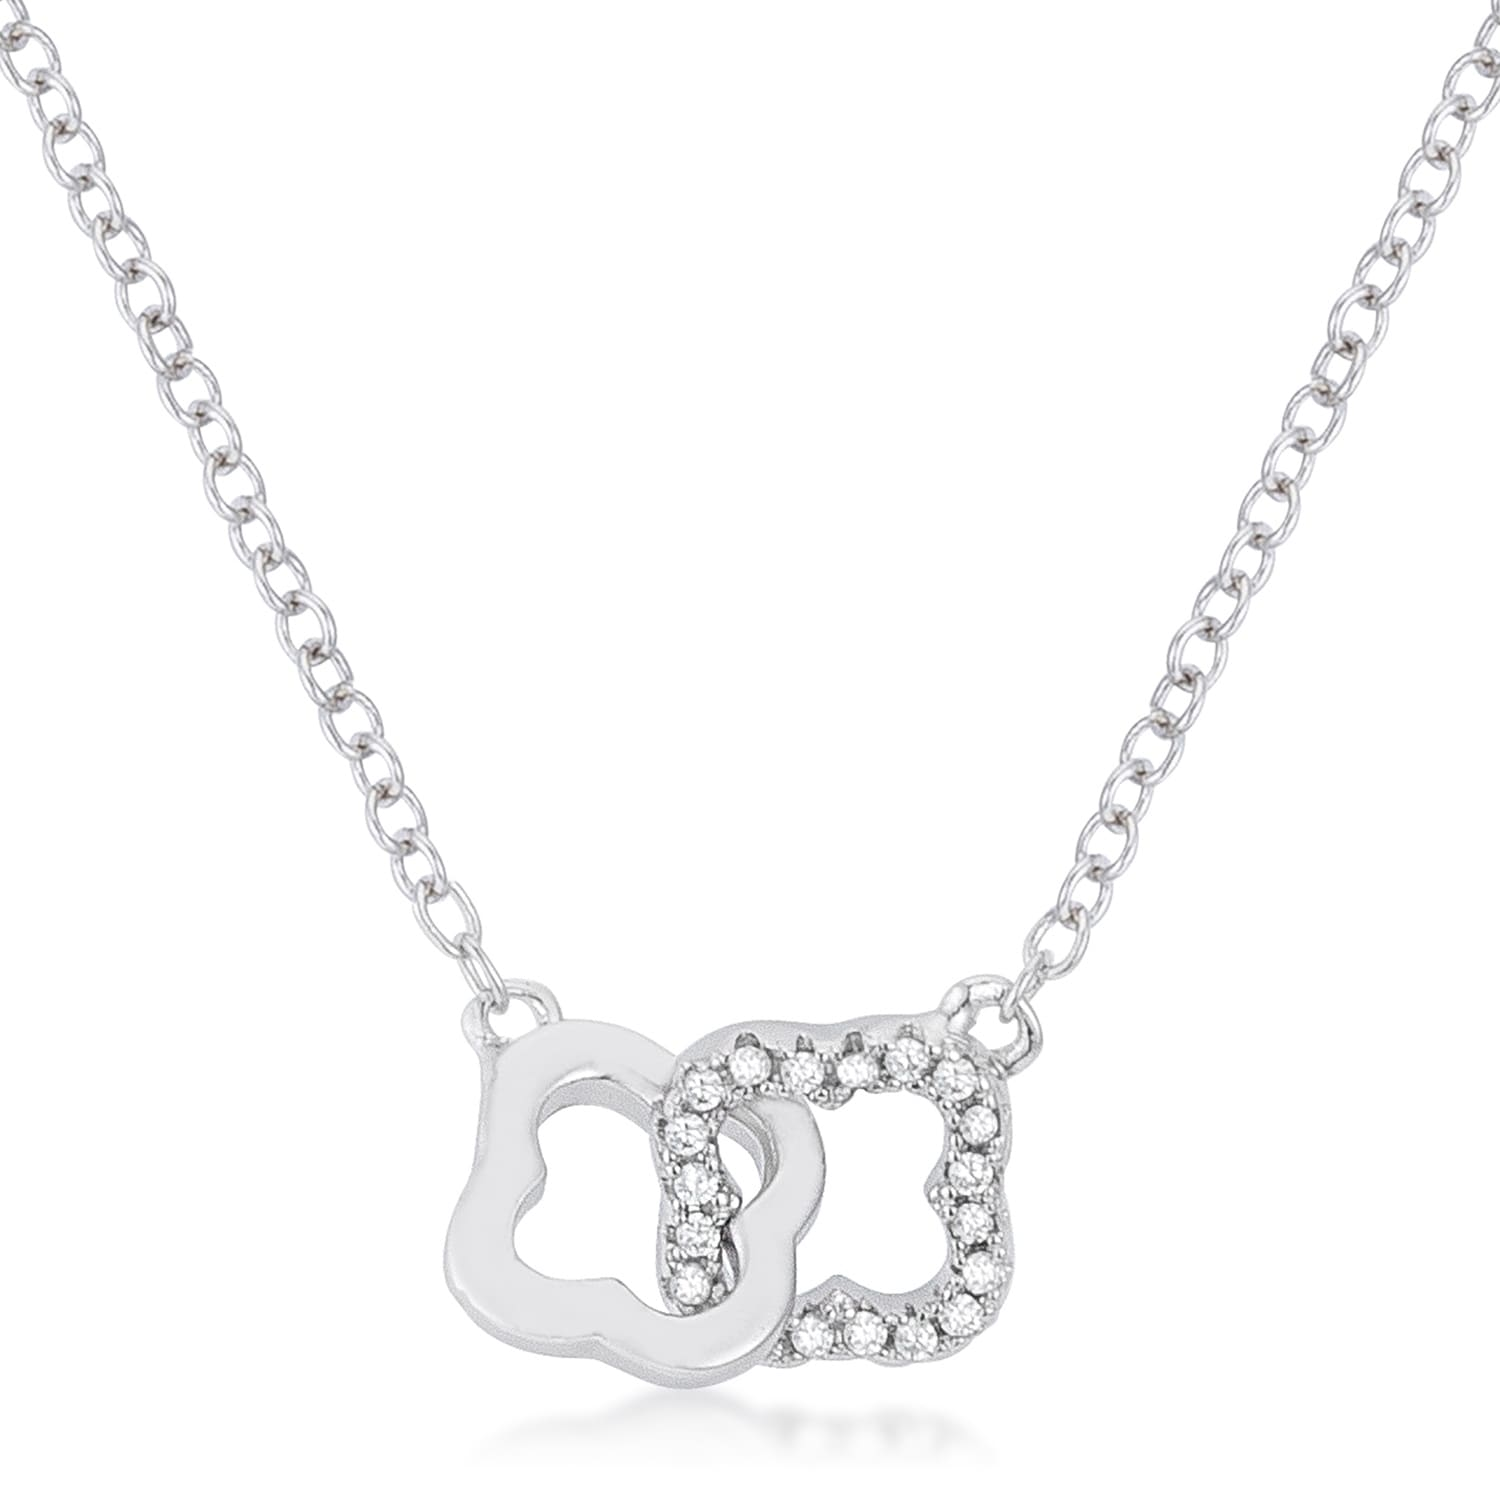 .21 Ct Rhodium Necklace with Interlocking Floral Links and Cubic Zirconia